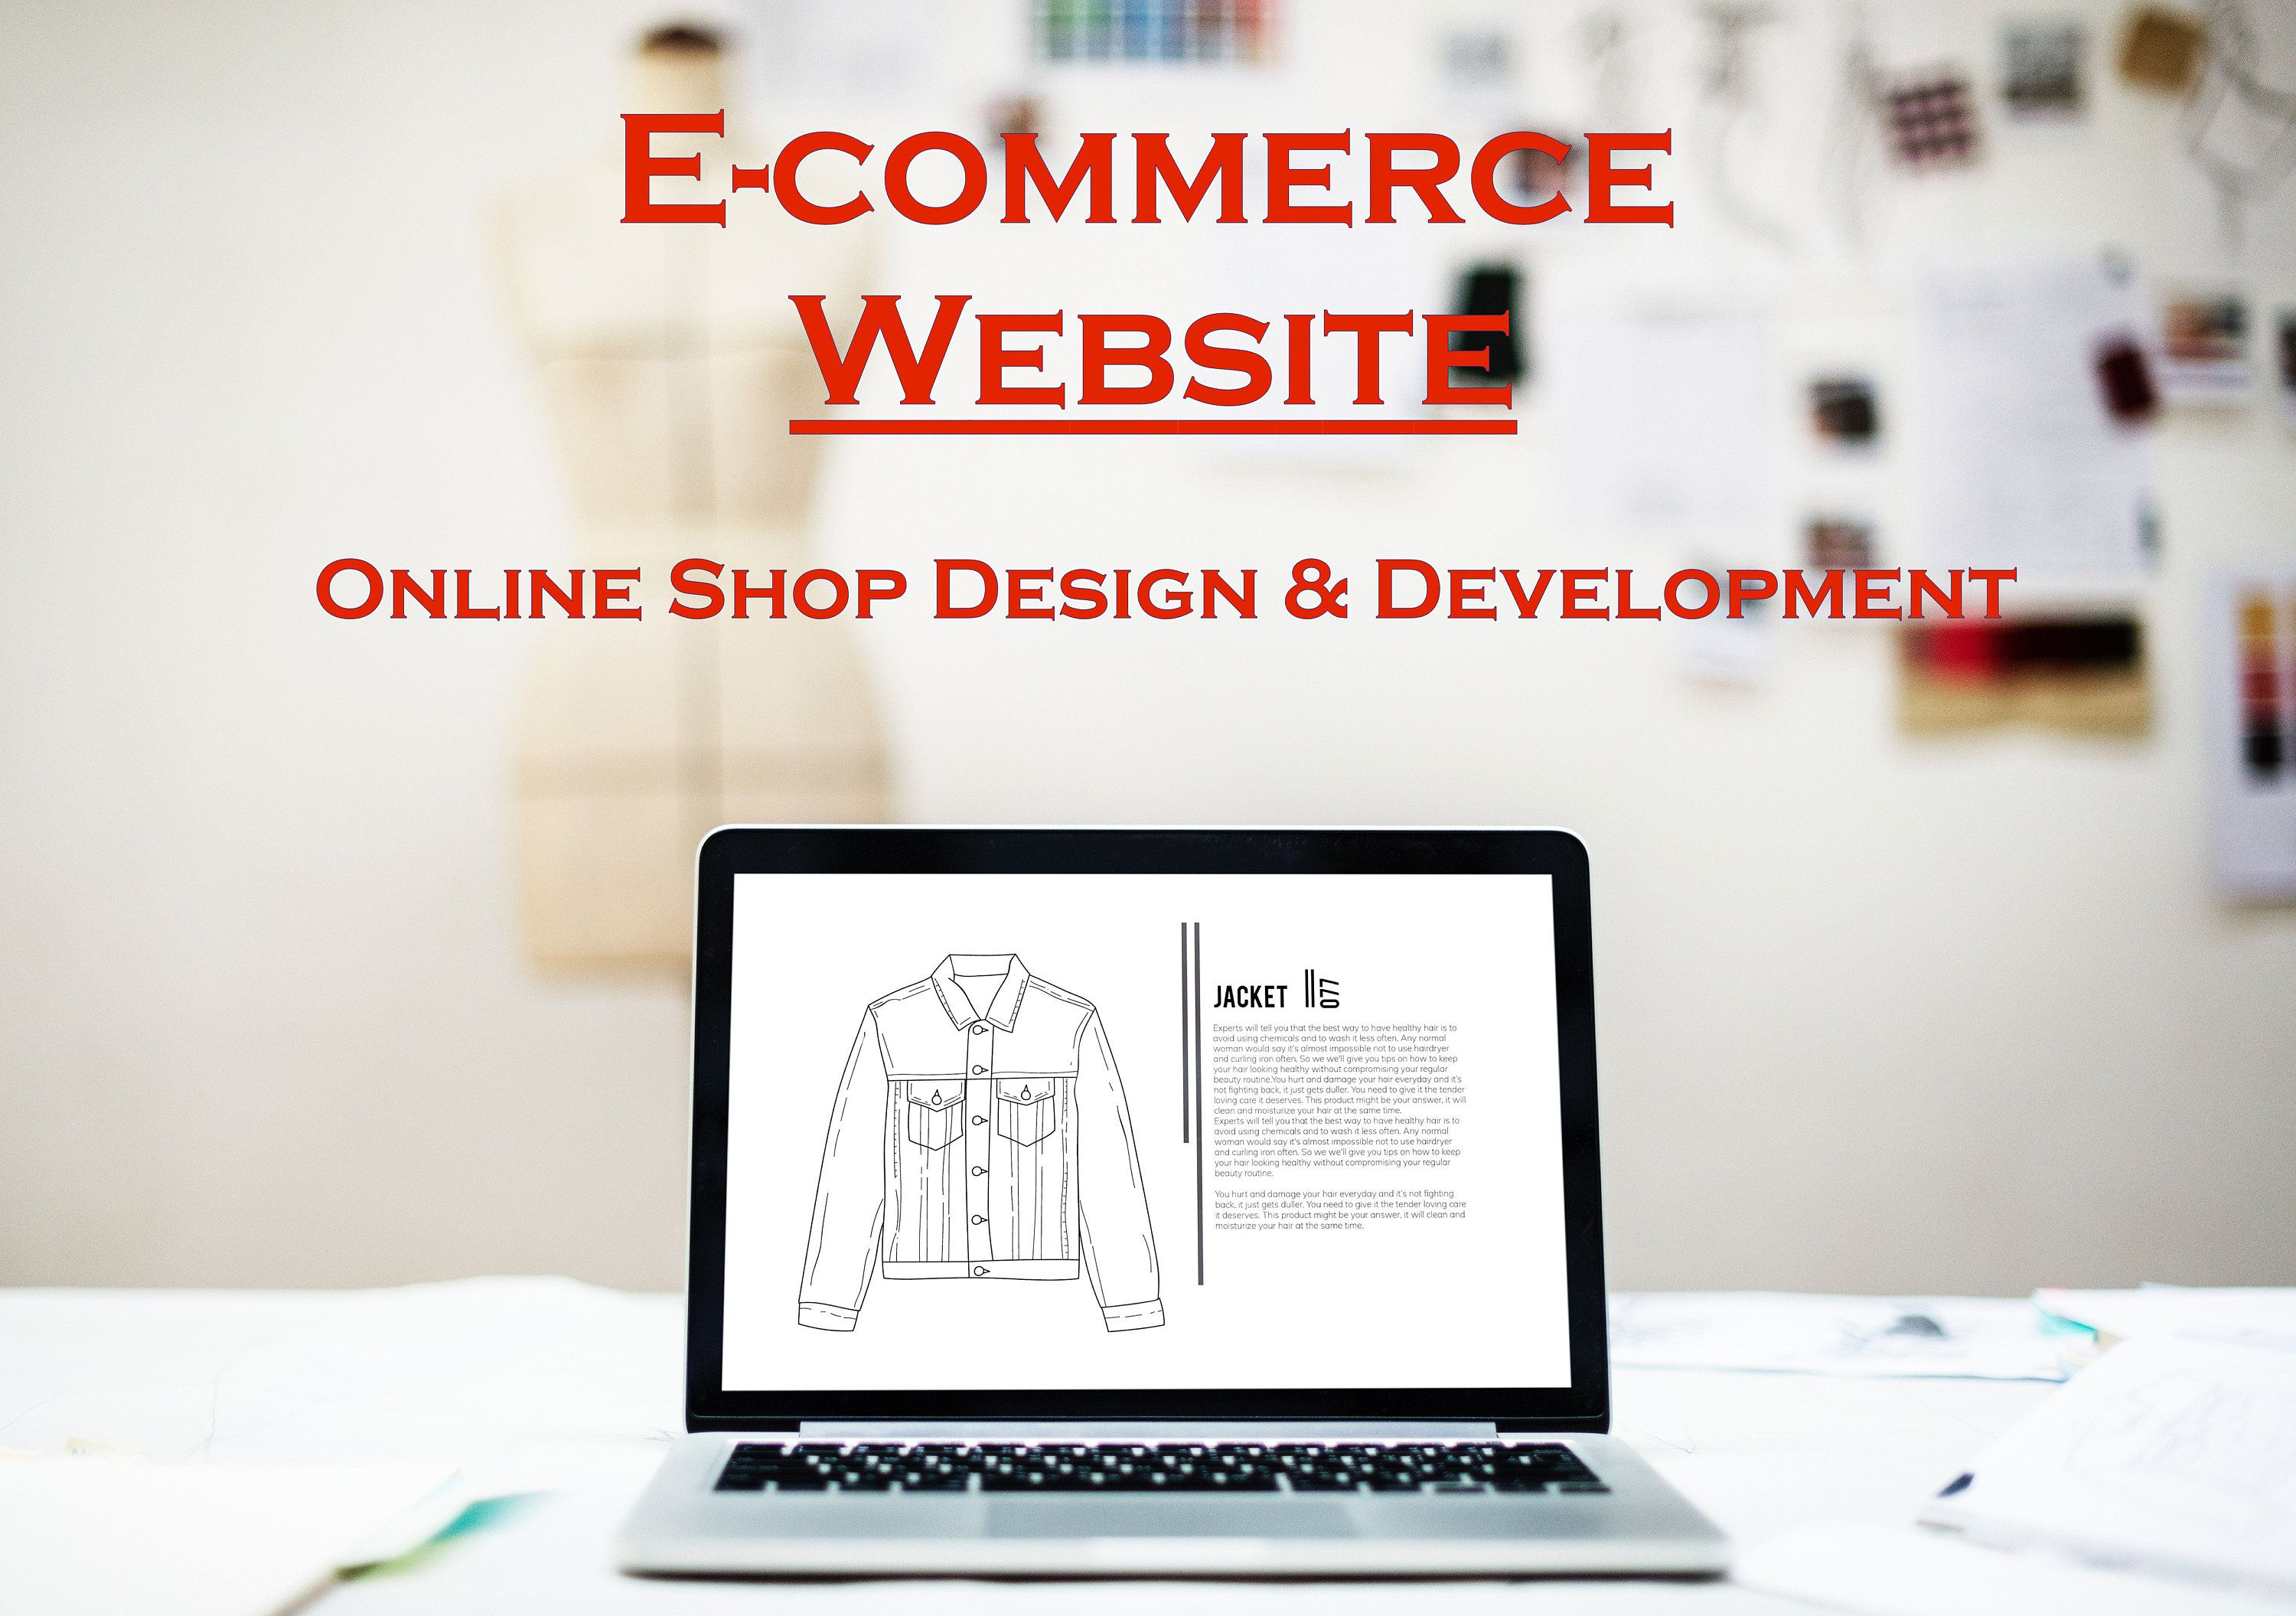 Web Design And Development At Affordable Prices For Online Shop E Commerce Web Development Design Online Shop Design Online Web Design